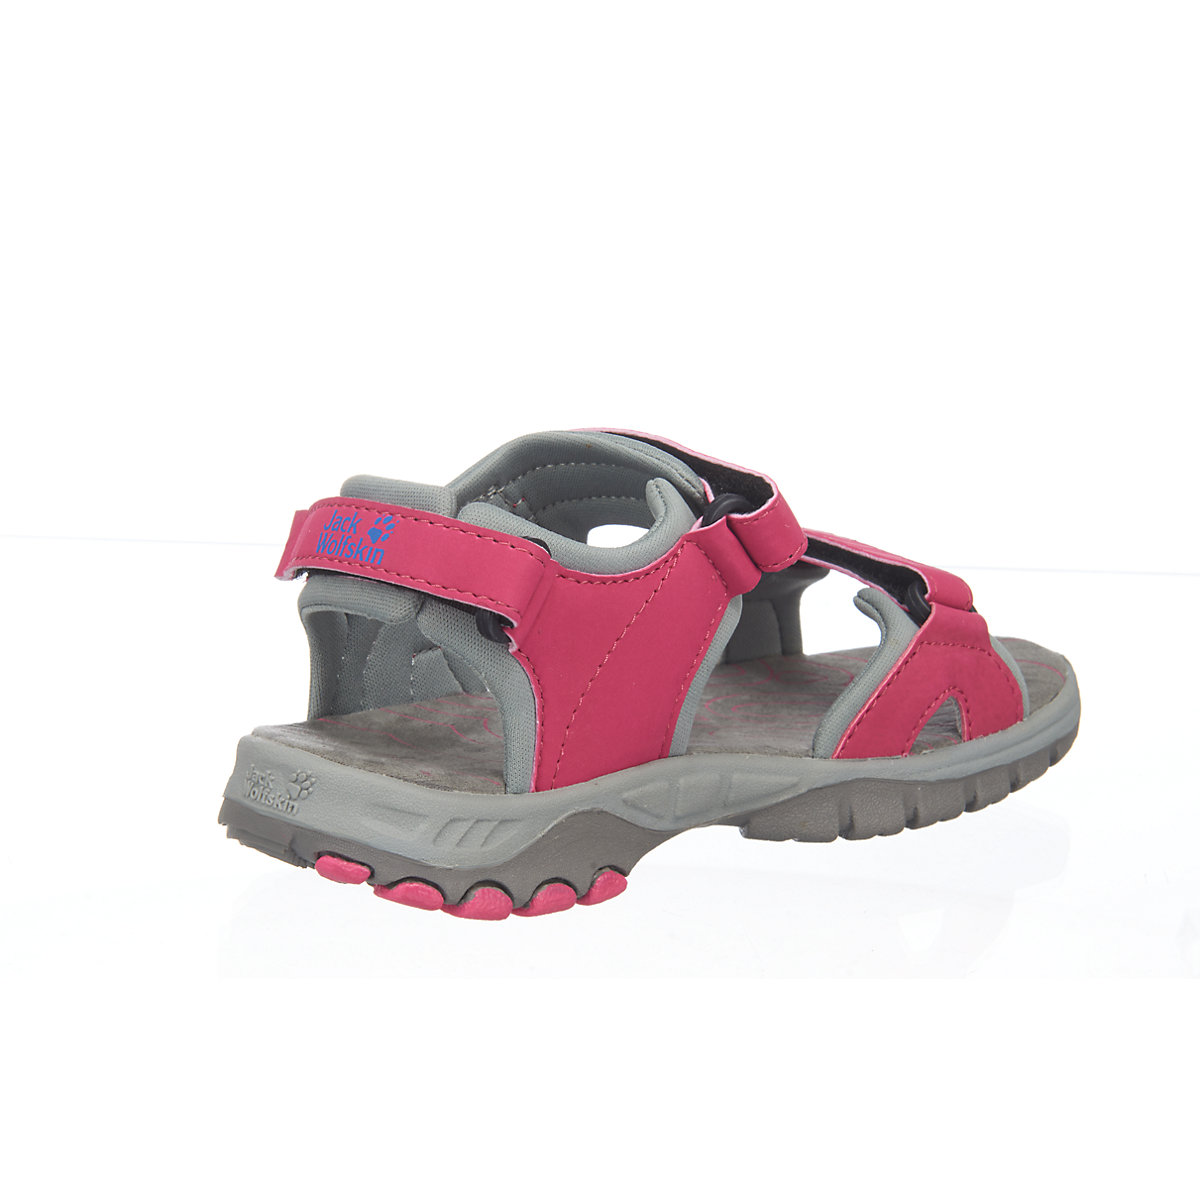 jack wolfskin kinder sandalen lakewood cruise pink mirapodo. Black Bedroom Furniture Sets. Home Design Ideas